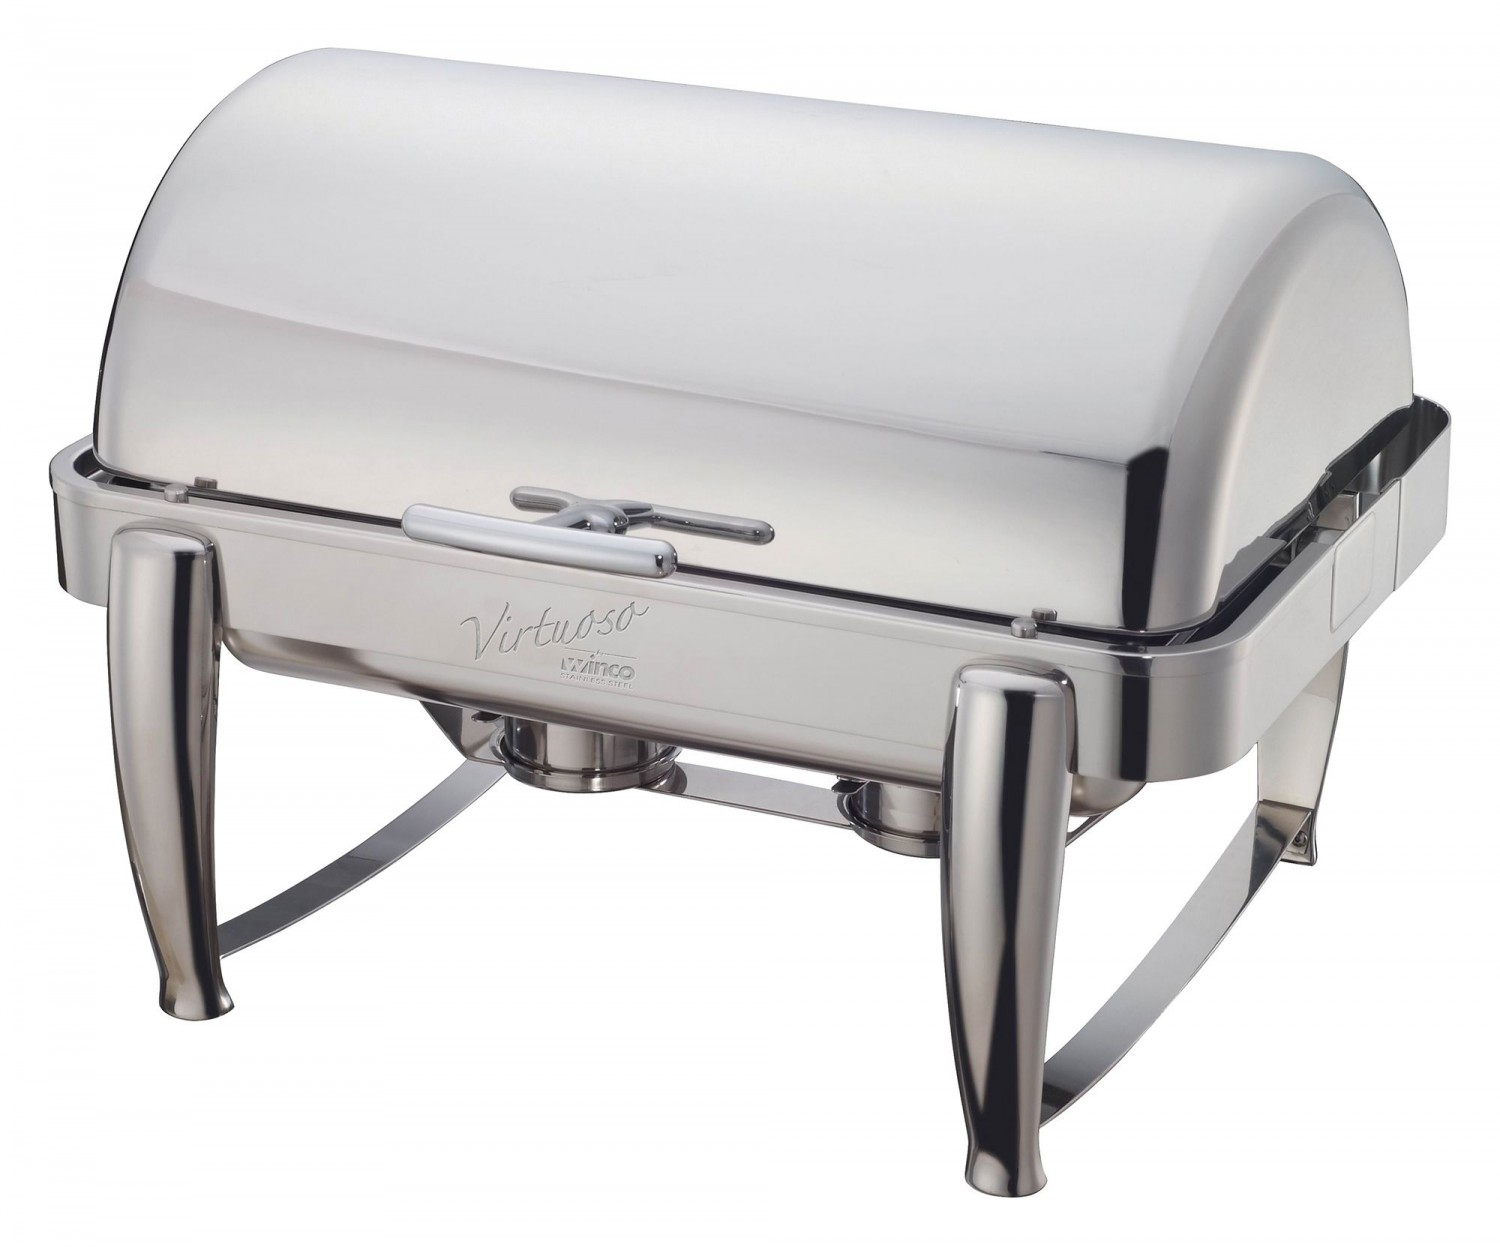 Winco 101B Virtuoso Full Size Oblong Roll Top Stainless Steel Chafer 8 Qt.